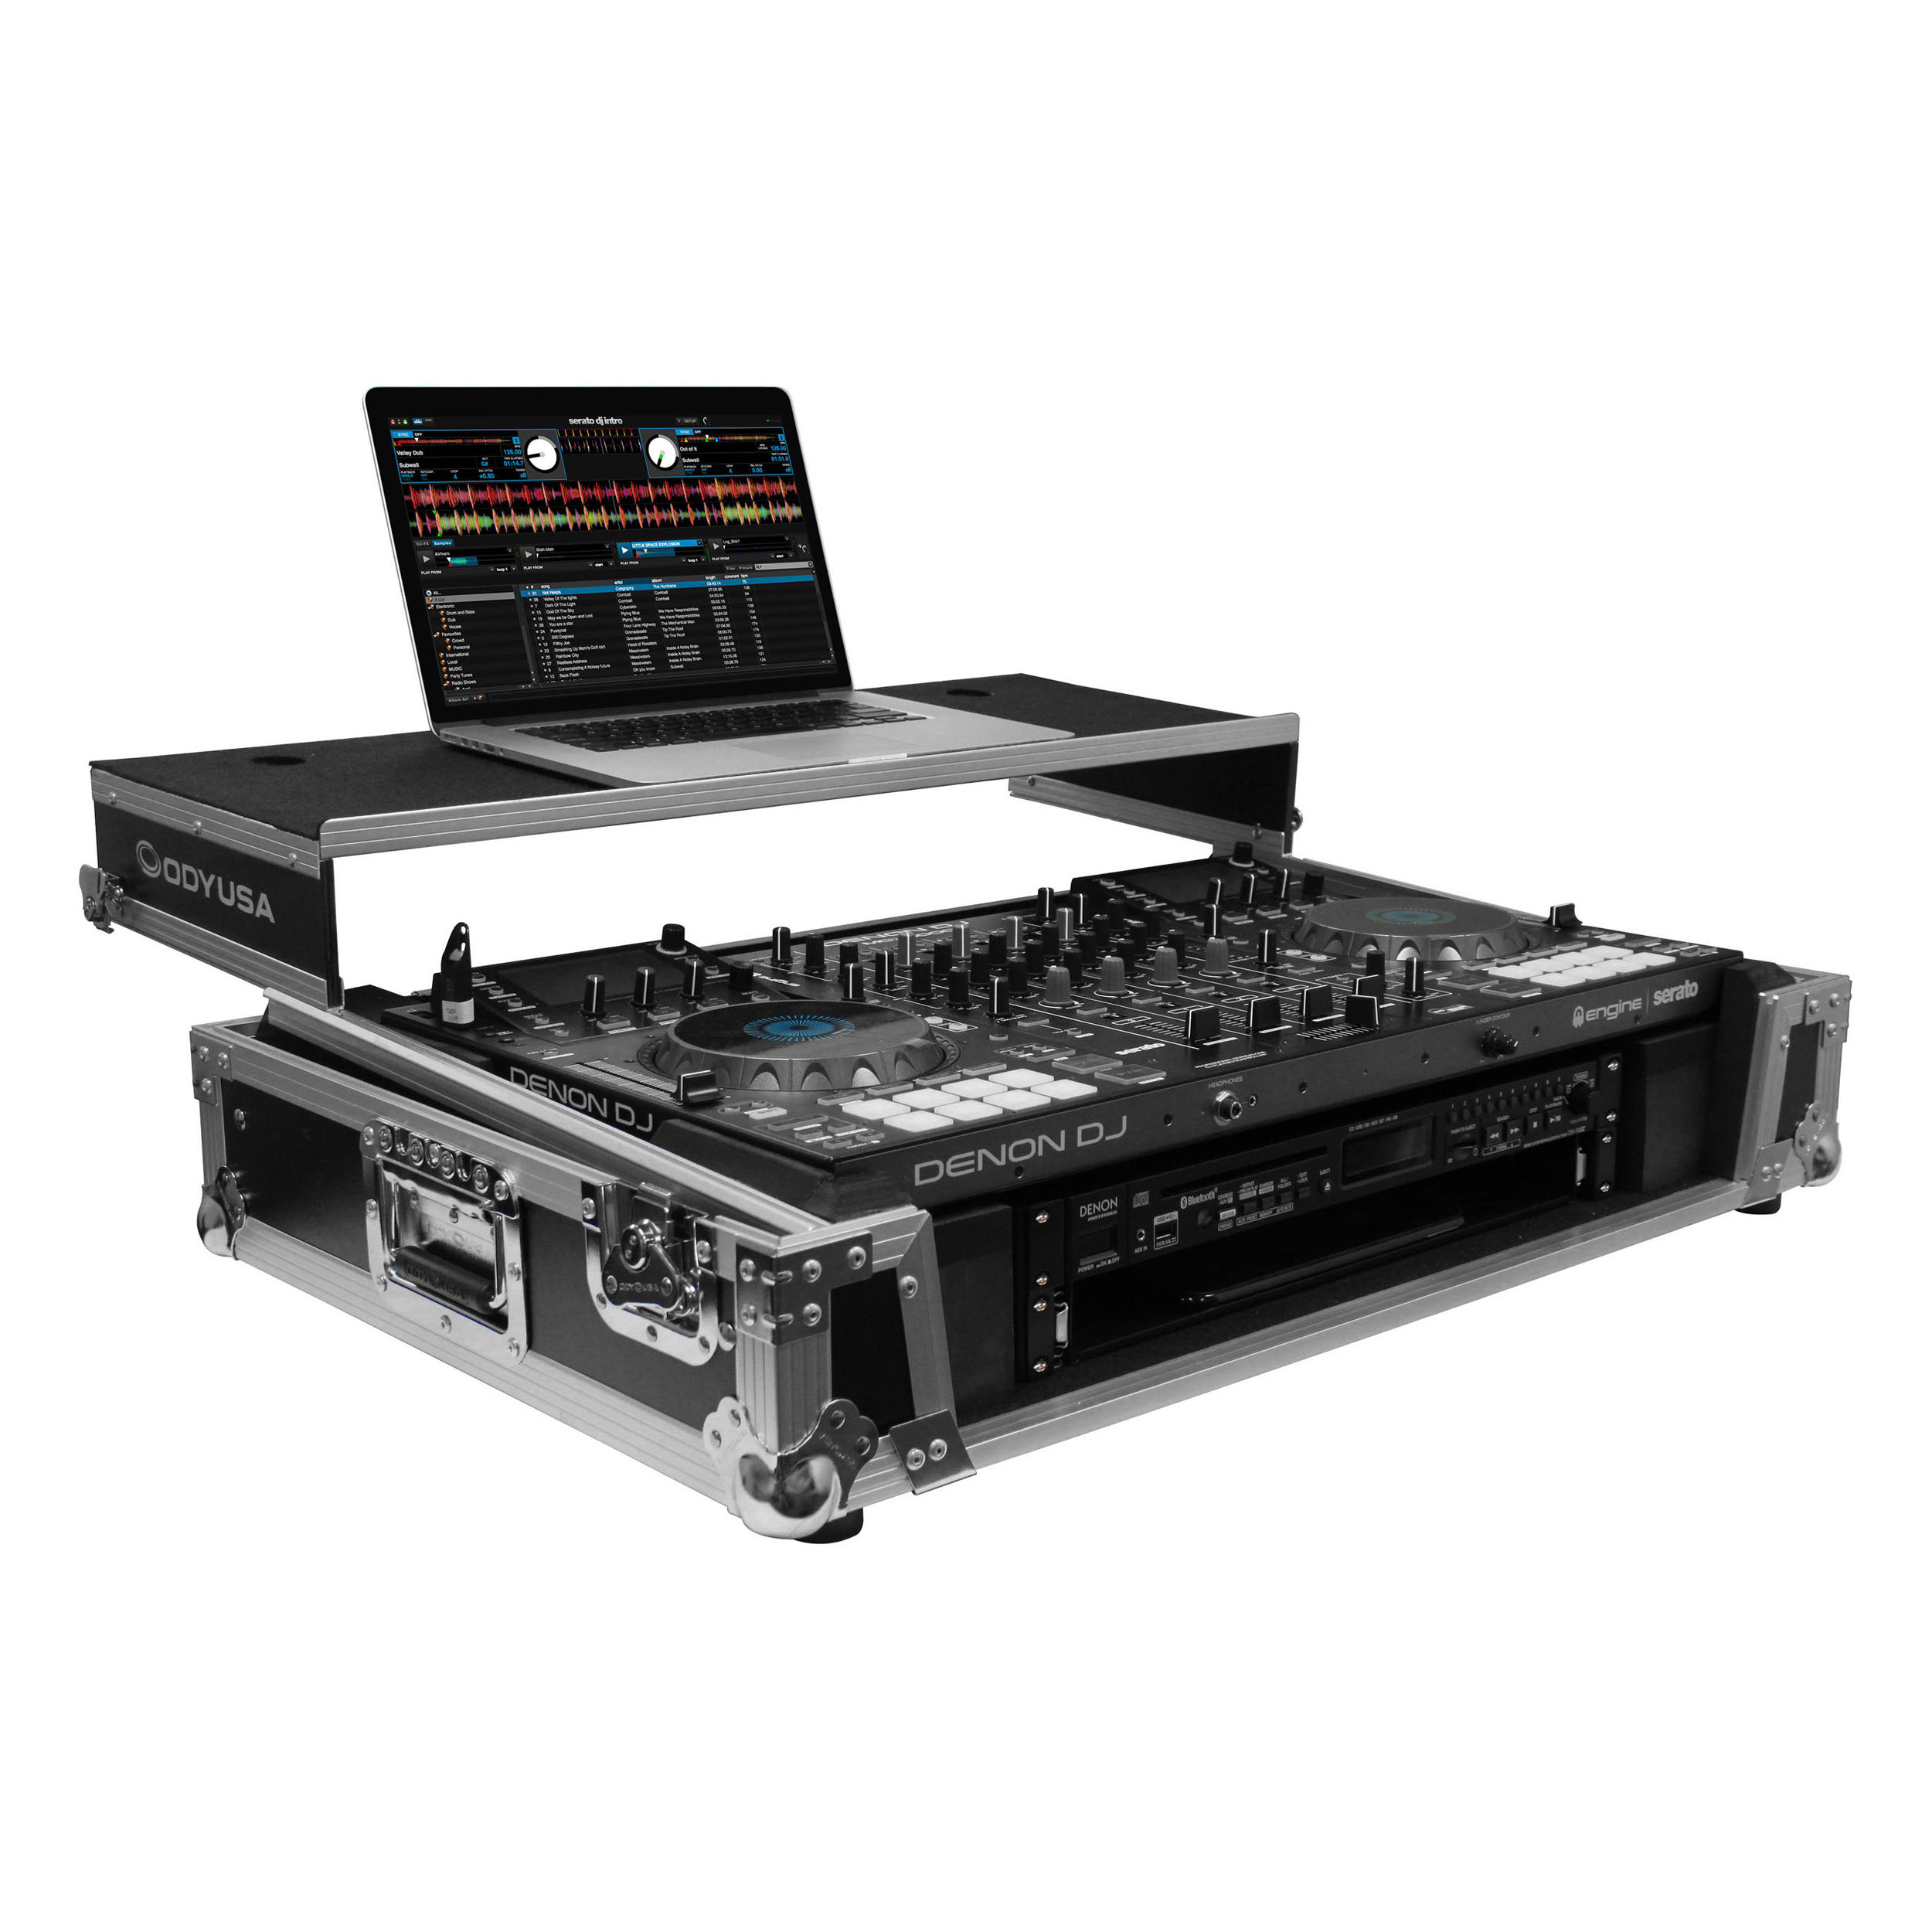 Odyssey FZGSMCX8000W2 | Flight Zone DJ Controller Case for Denon MCX8000